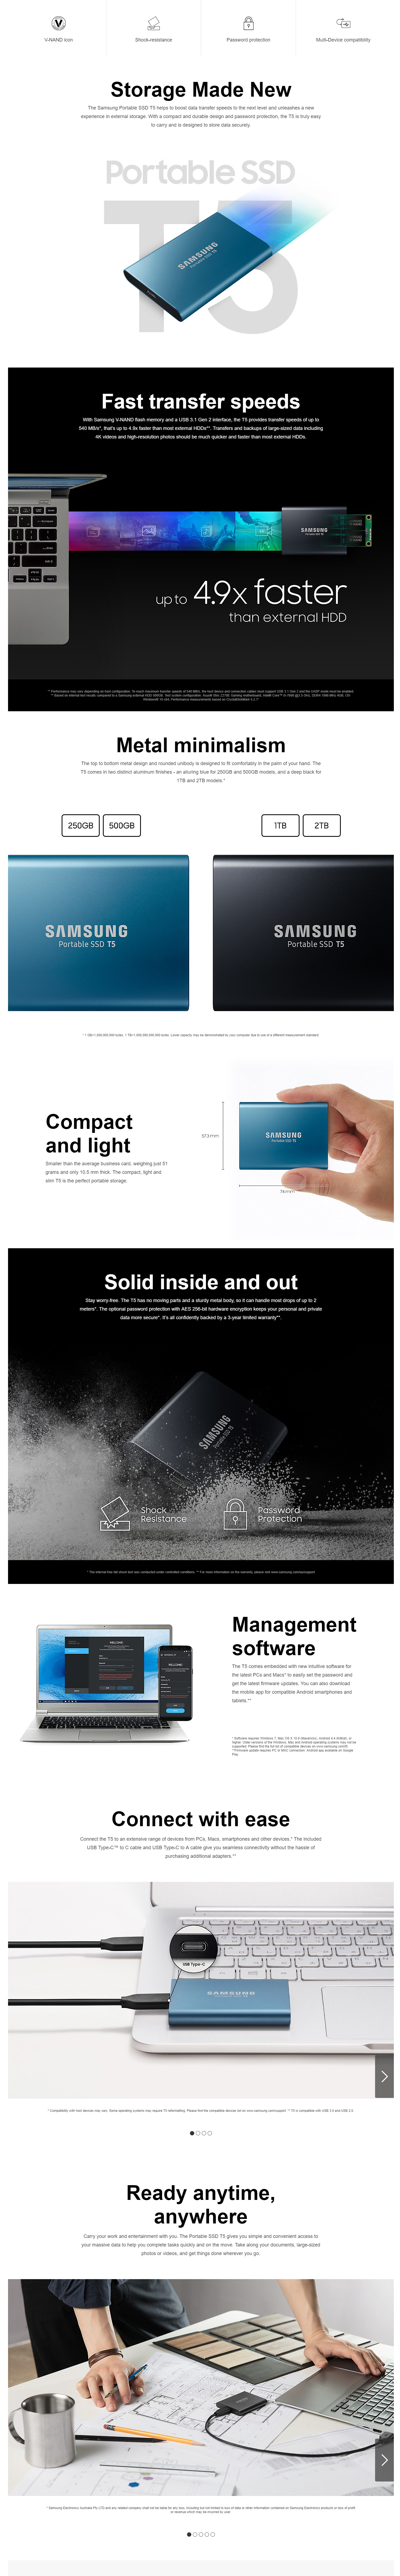 A large marketing image providing additional information about the product Samsung T5 1TB USB3.1 Black Portable SSD - Additional alt info not provided